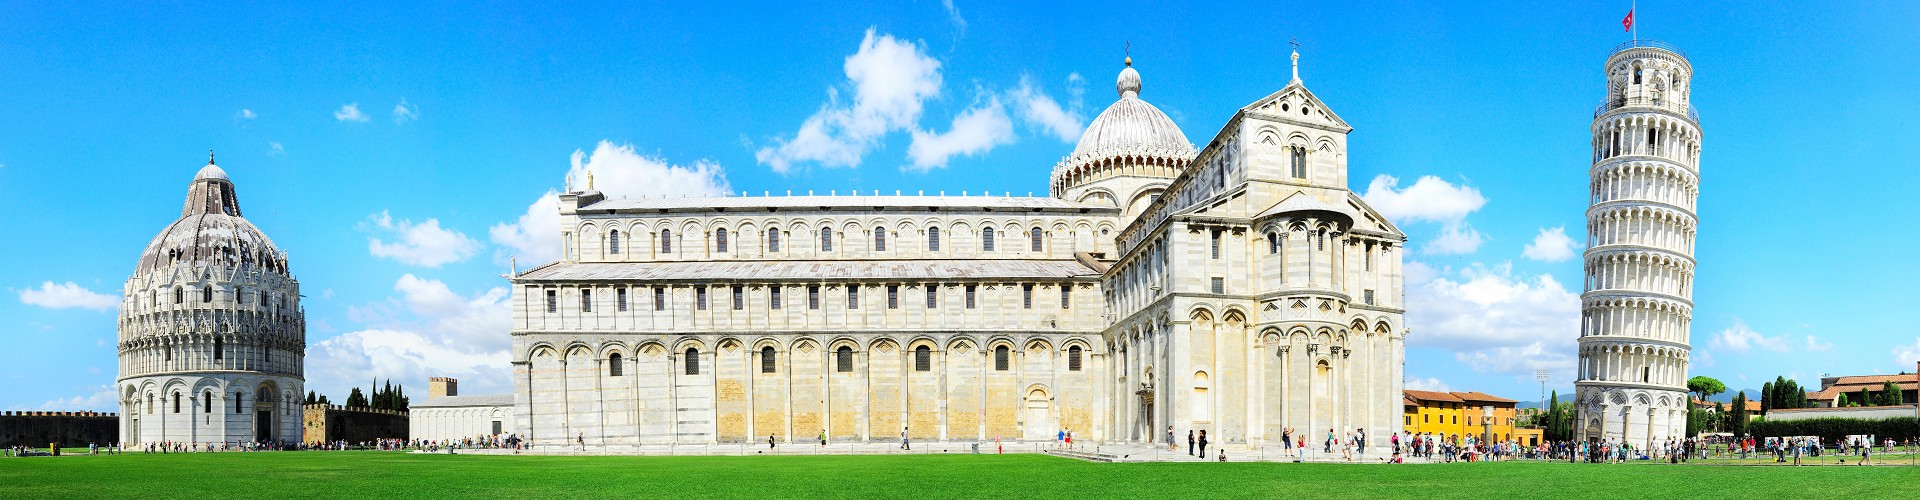 Port of Genoa to Leaning Tower of Pisa | Private Transfer Pisa to Florence